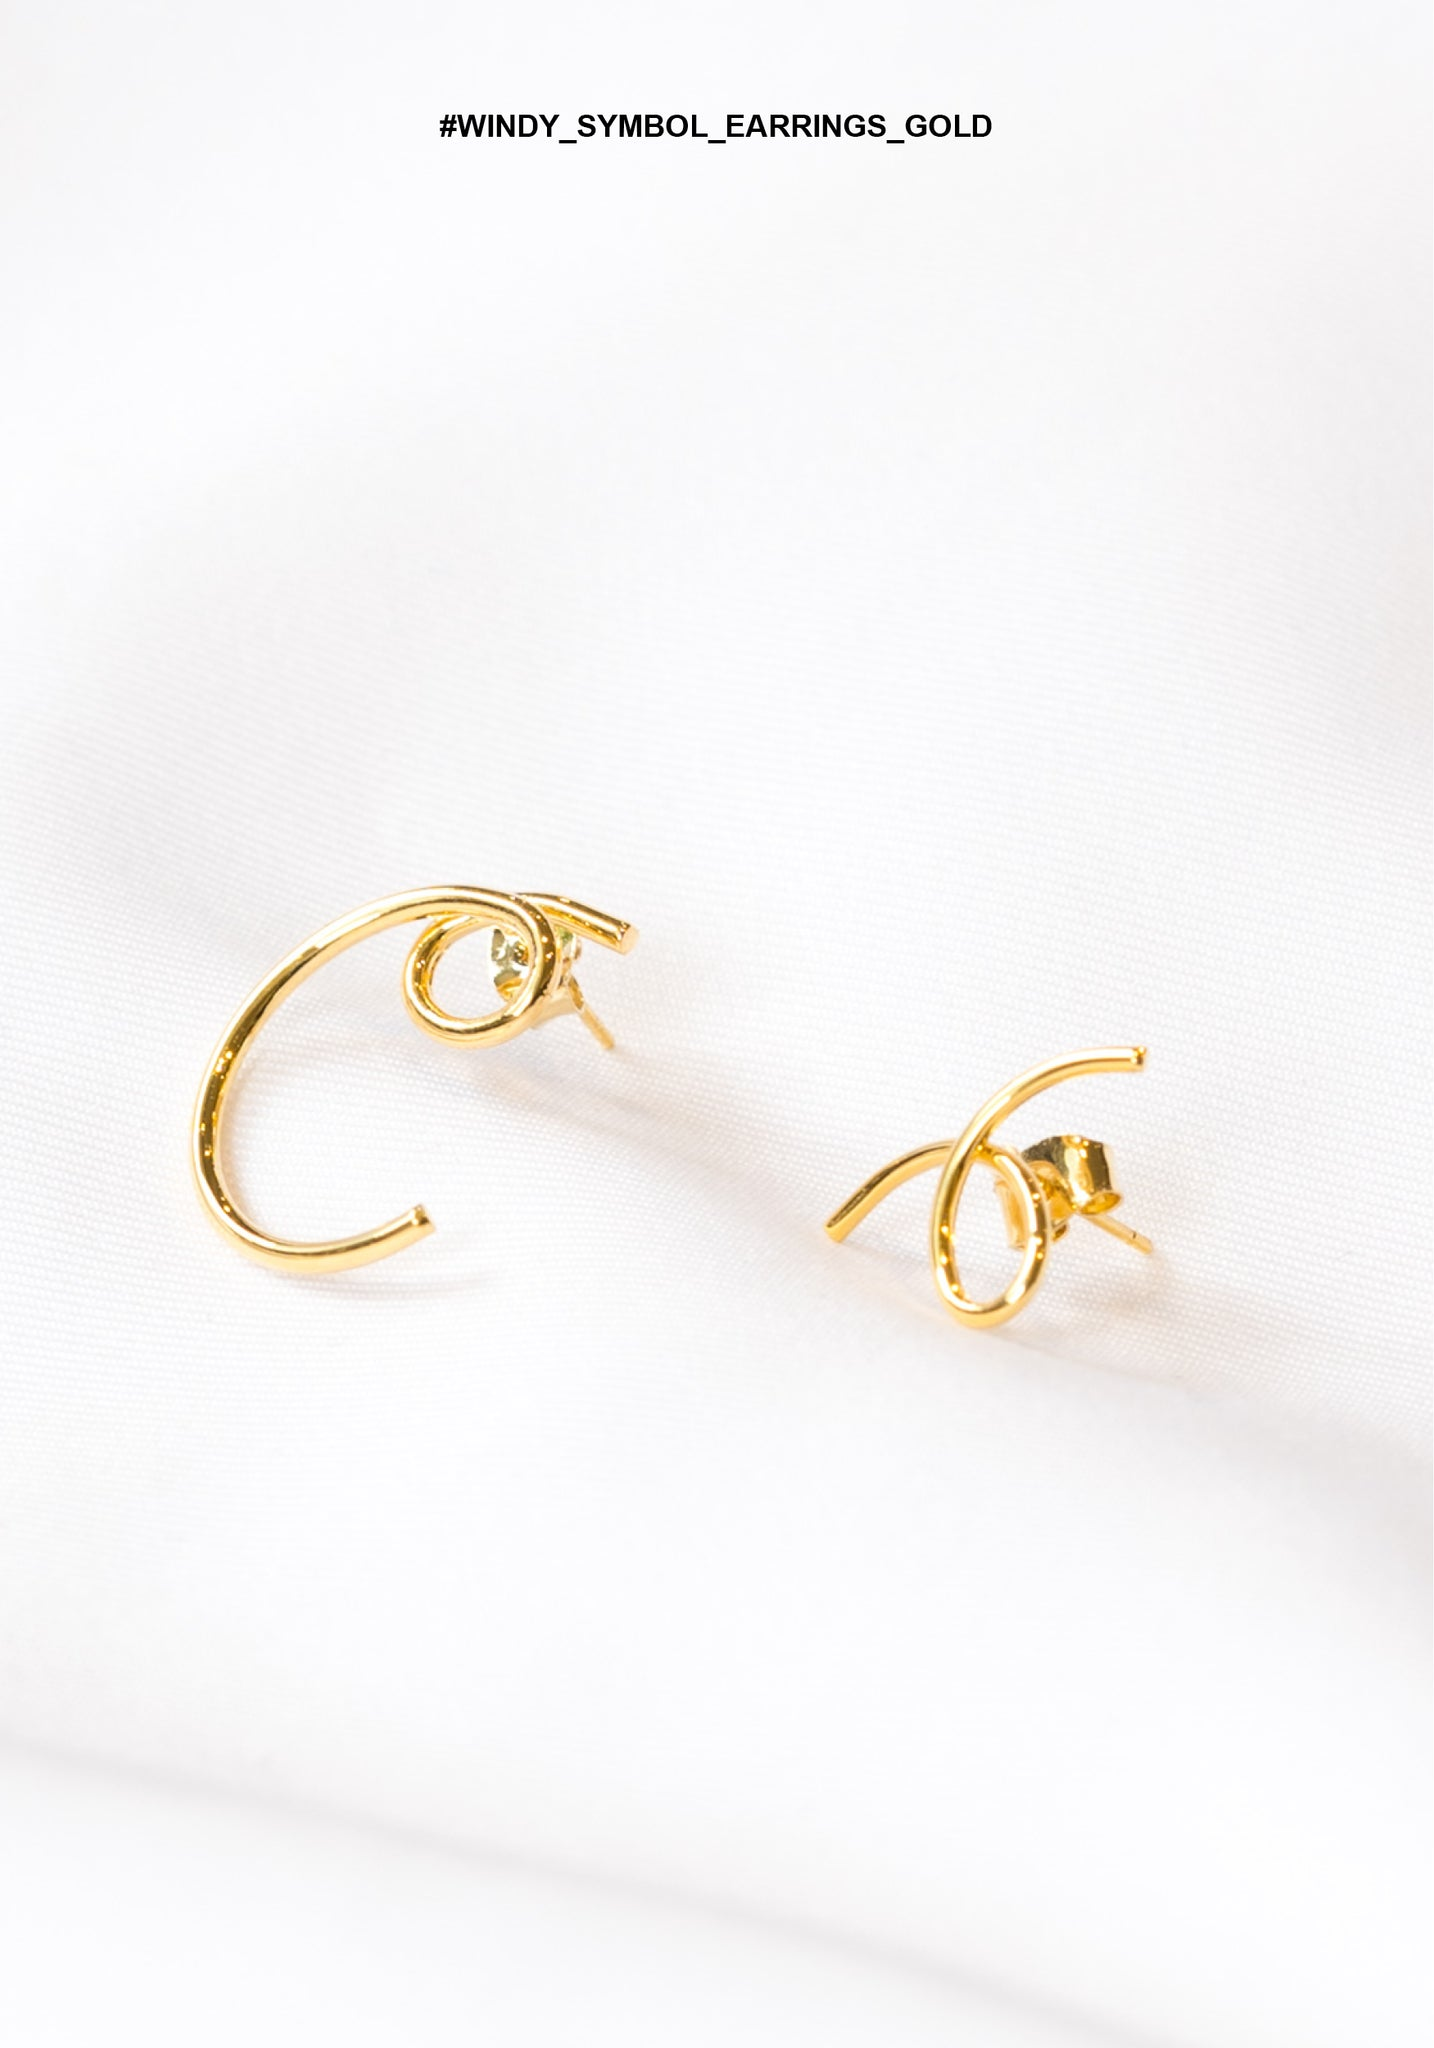 Windy Symbol Earrings Gold - whoami